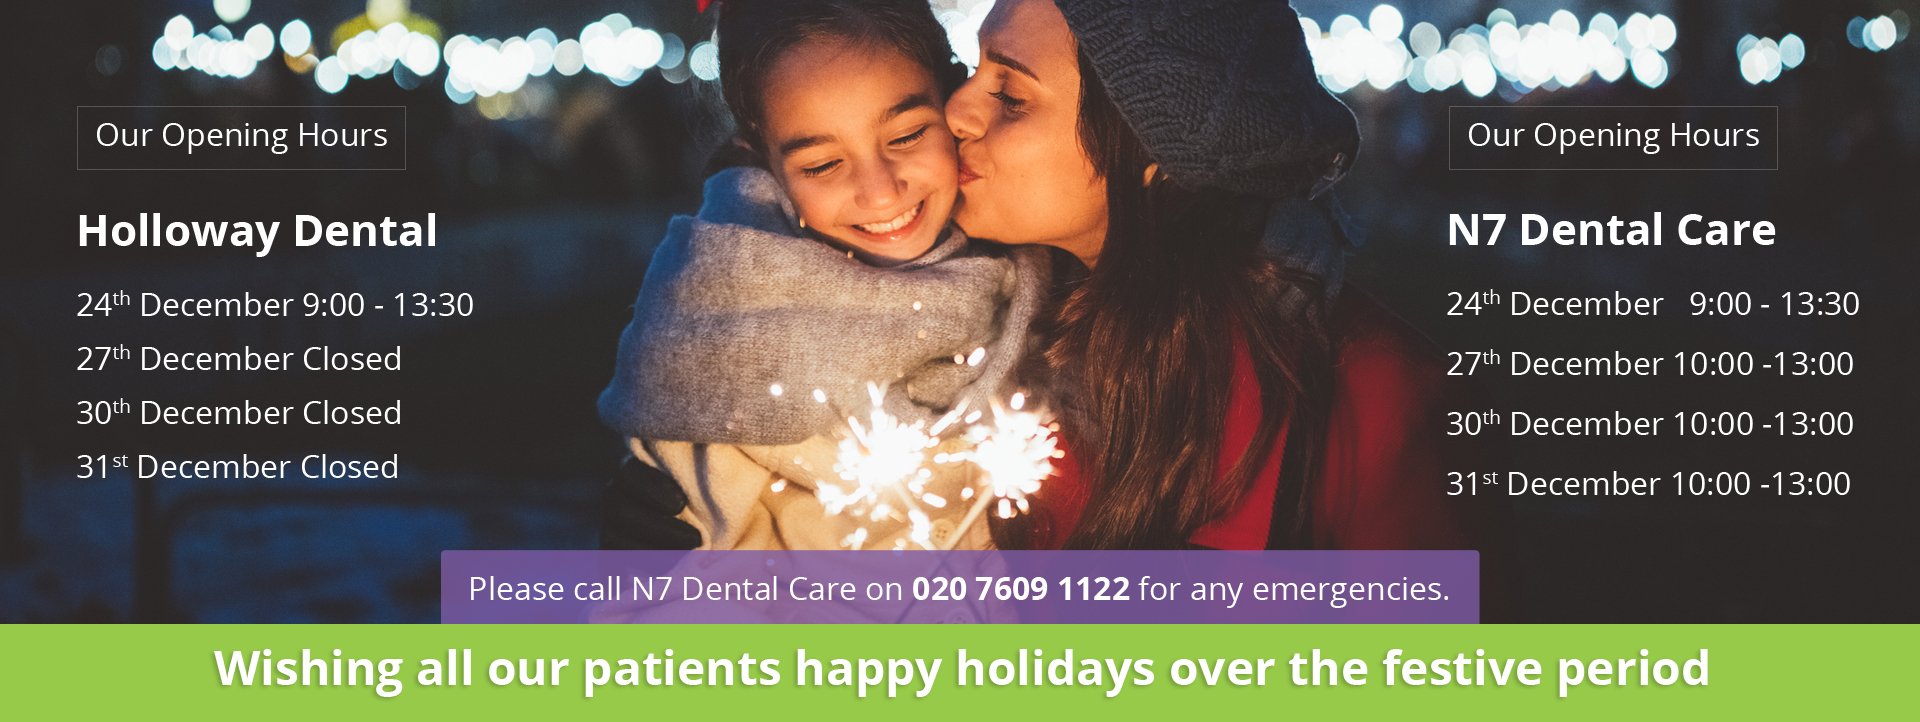 Wishing all our patients happy holidays over the festive period